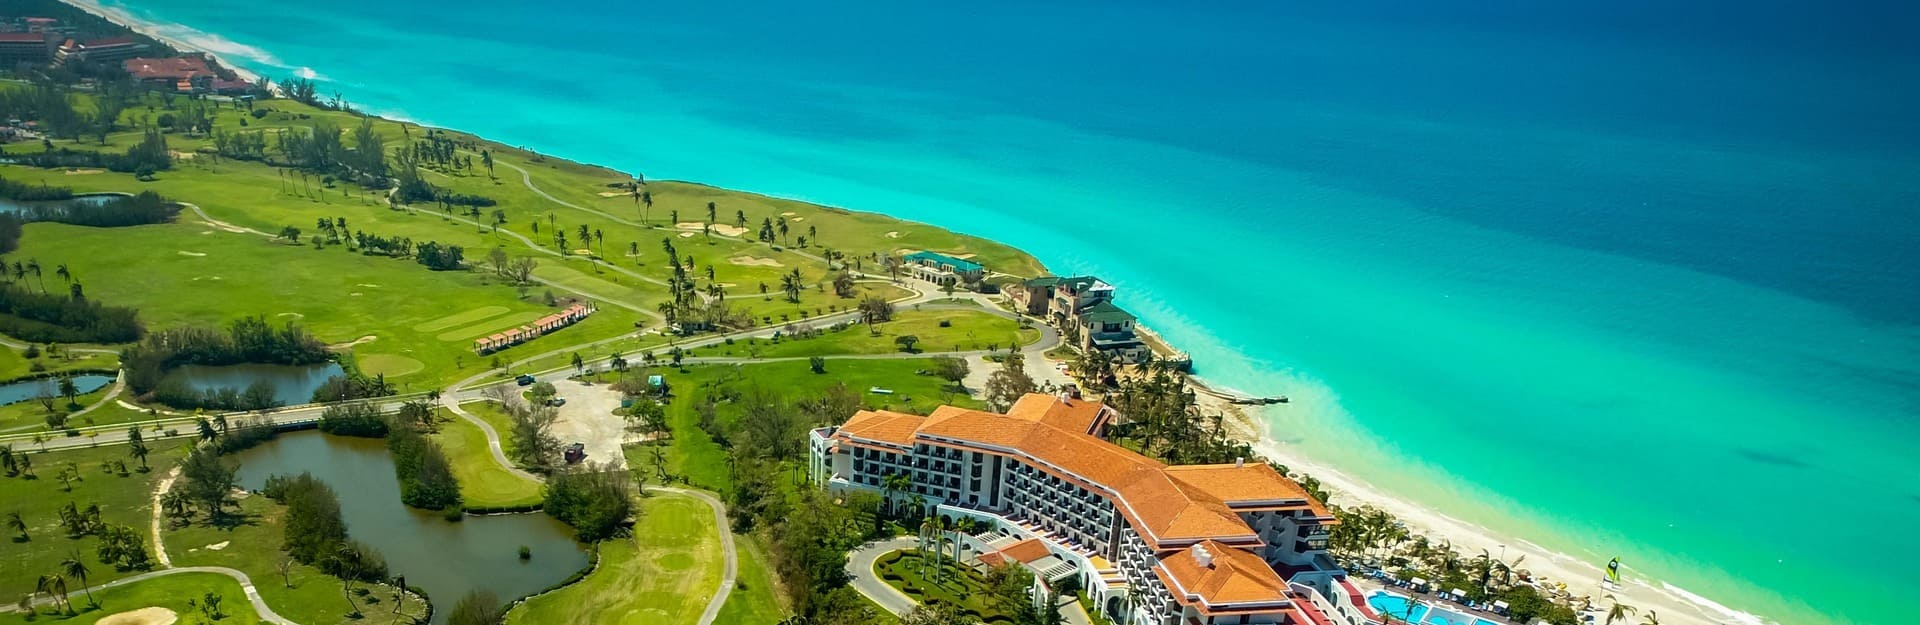 Aerial view of Varadero Golf Course, Cuba